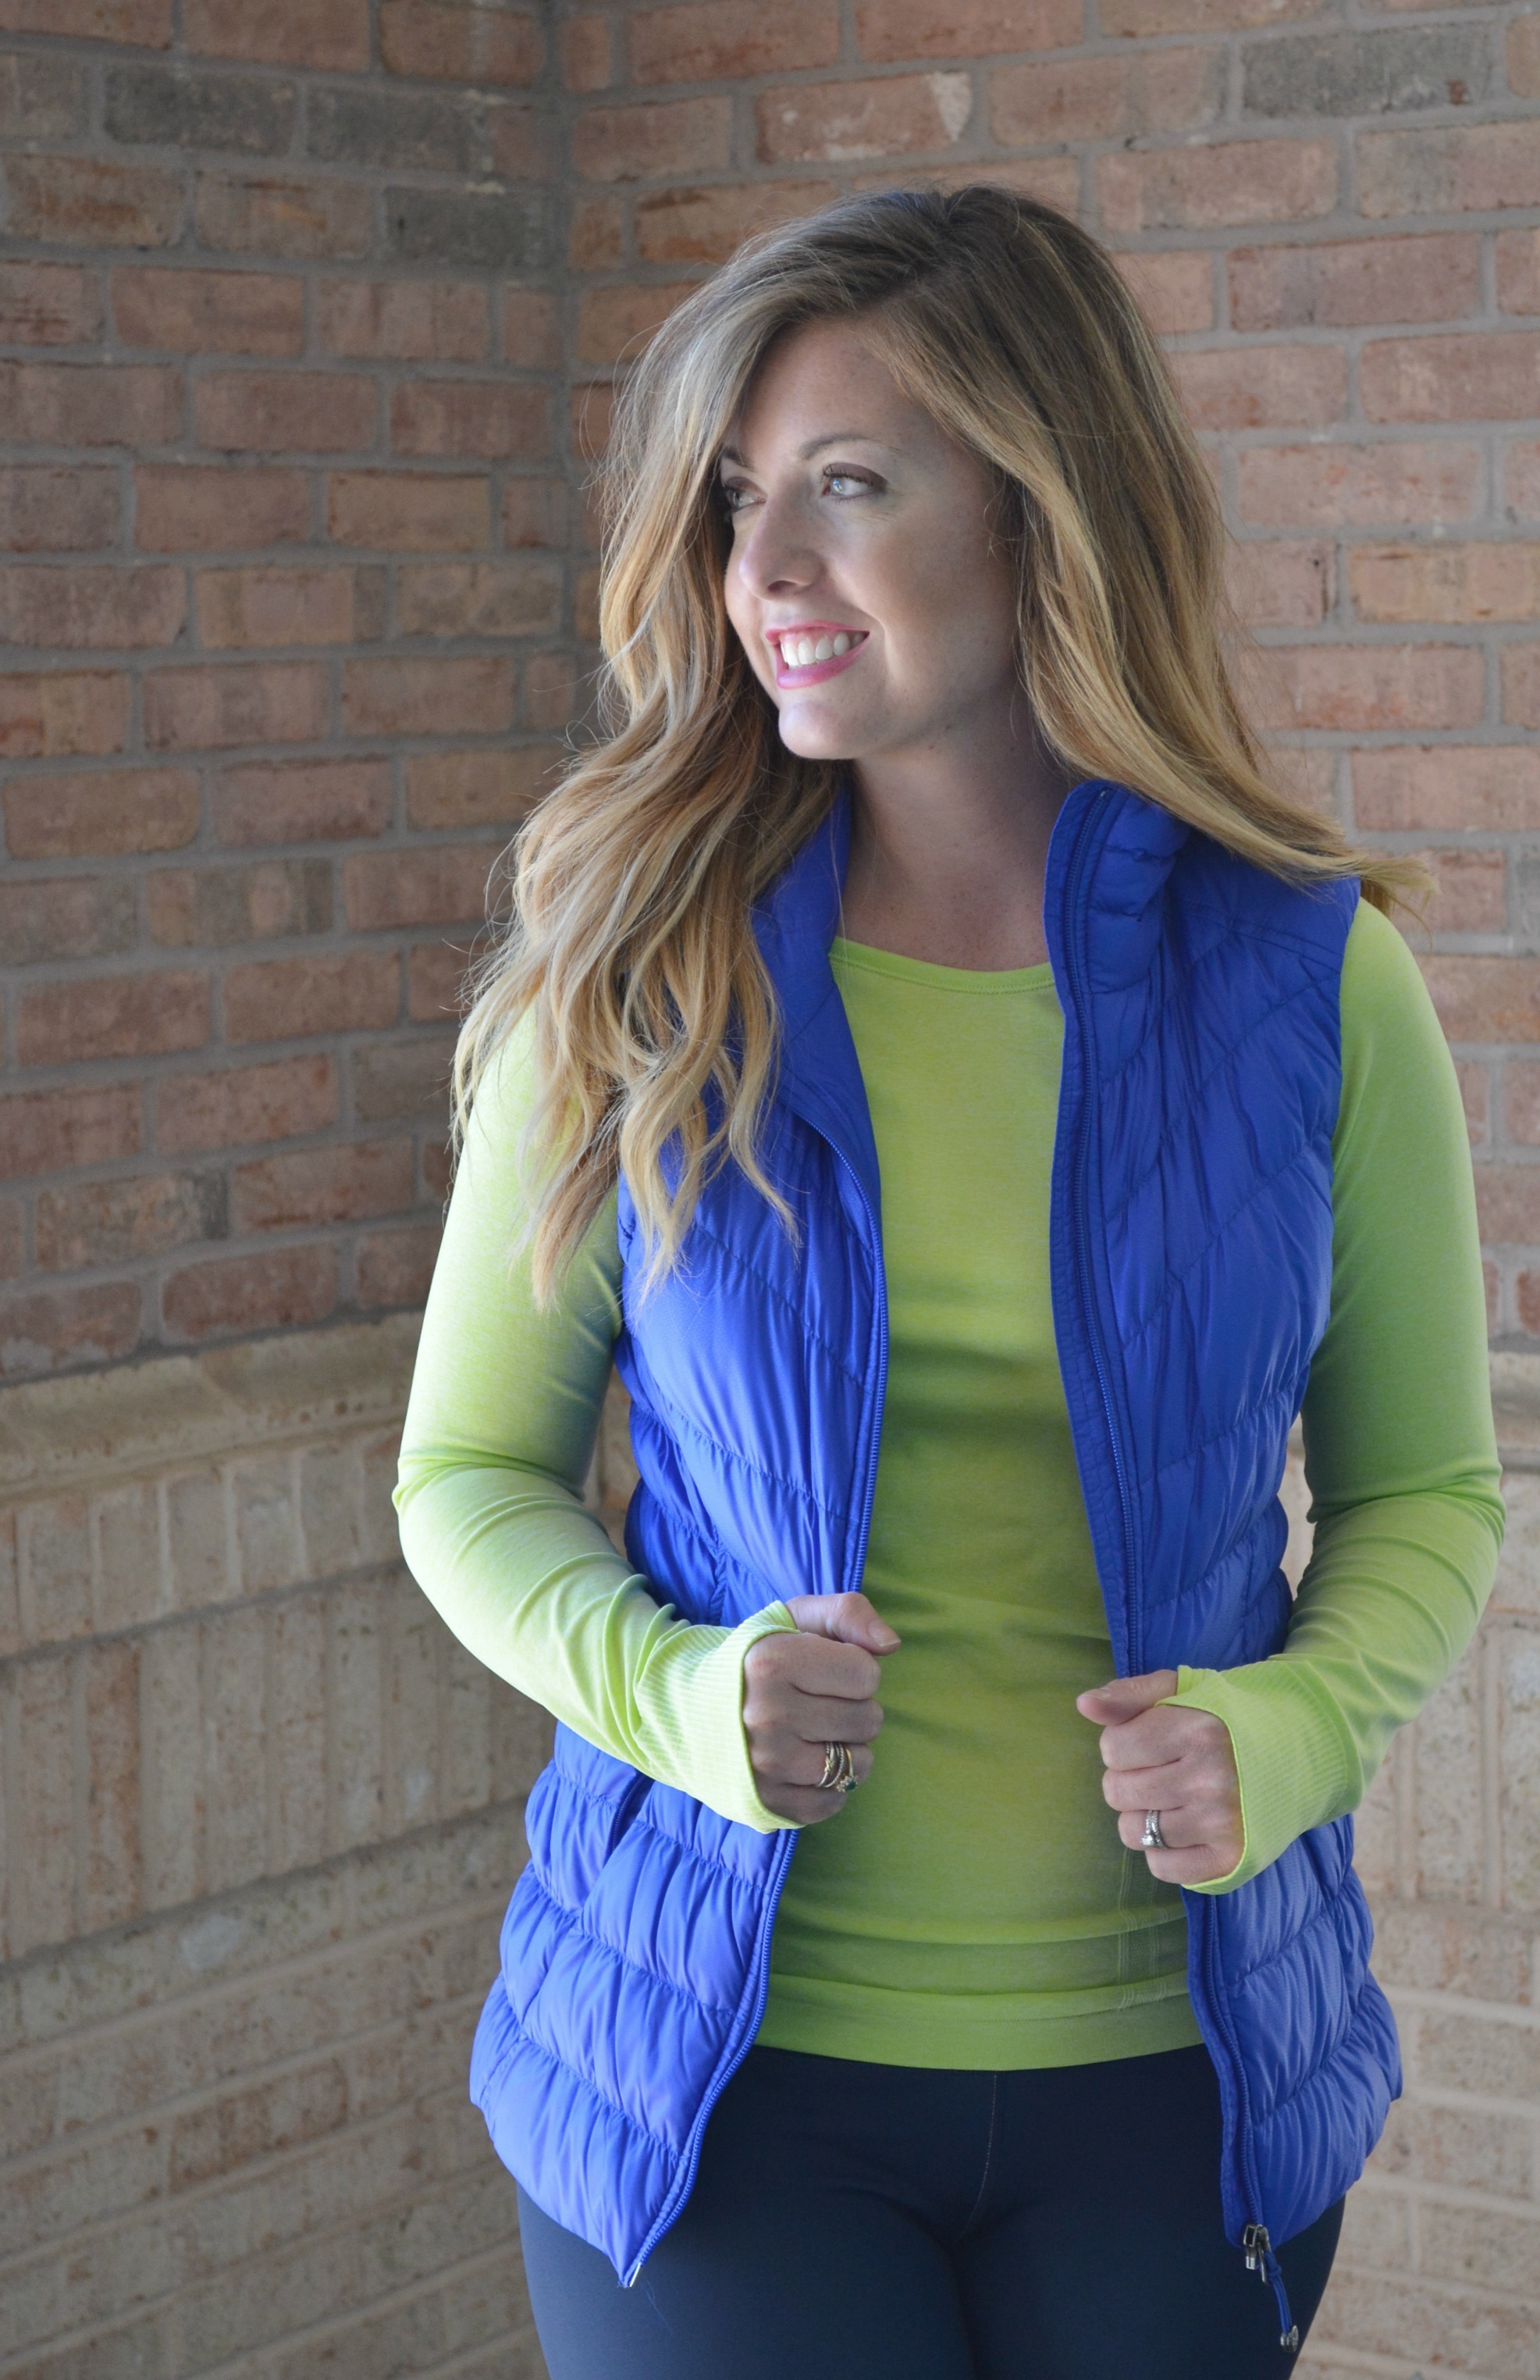 Royals blue from Athleta at Town Center on Sophisticaited